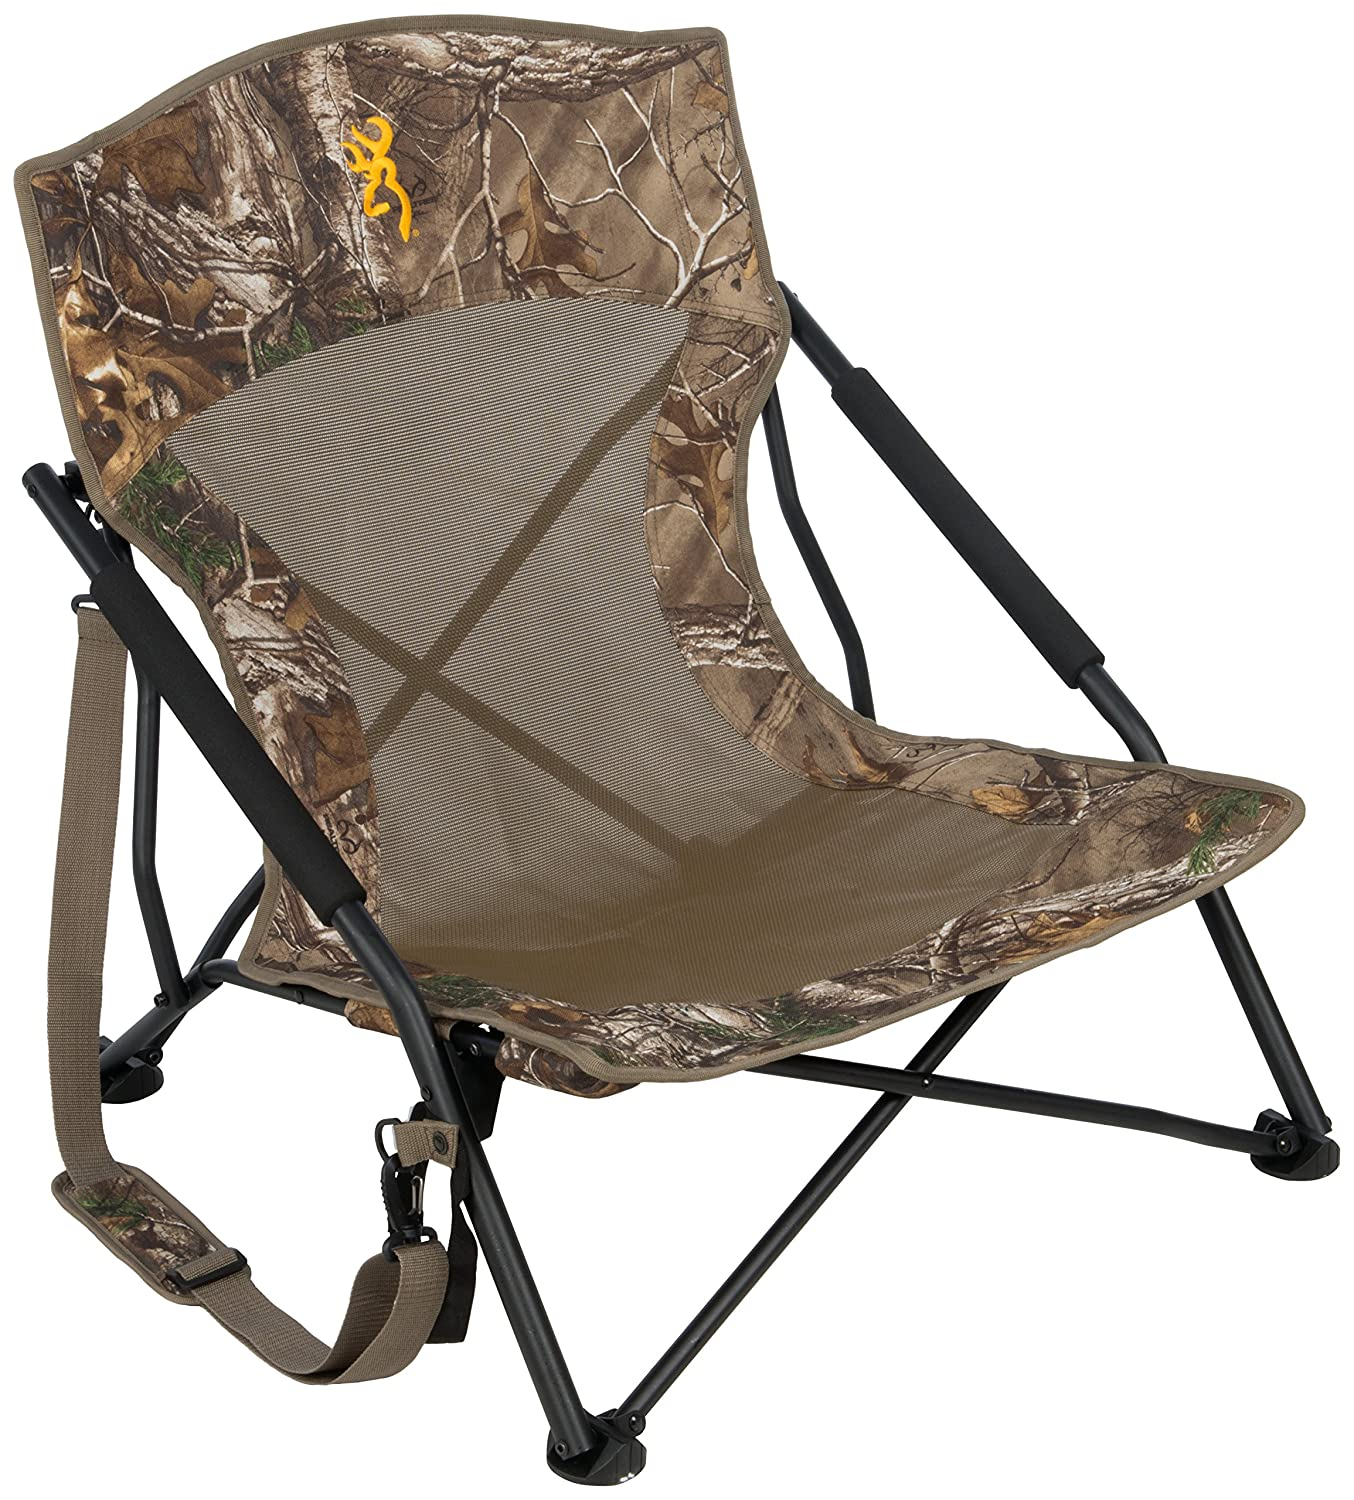 Browning Camping Strutter Folding Chair EBay